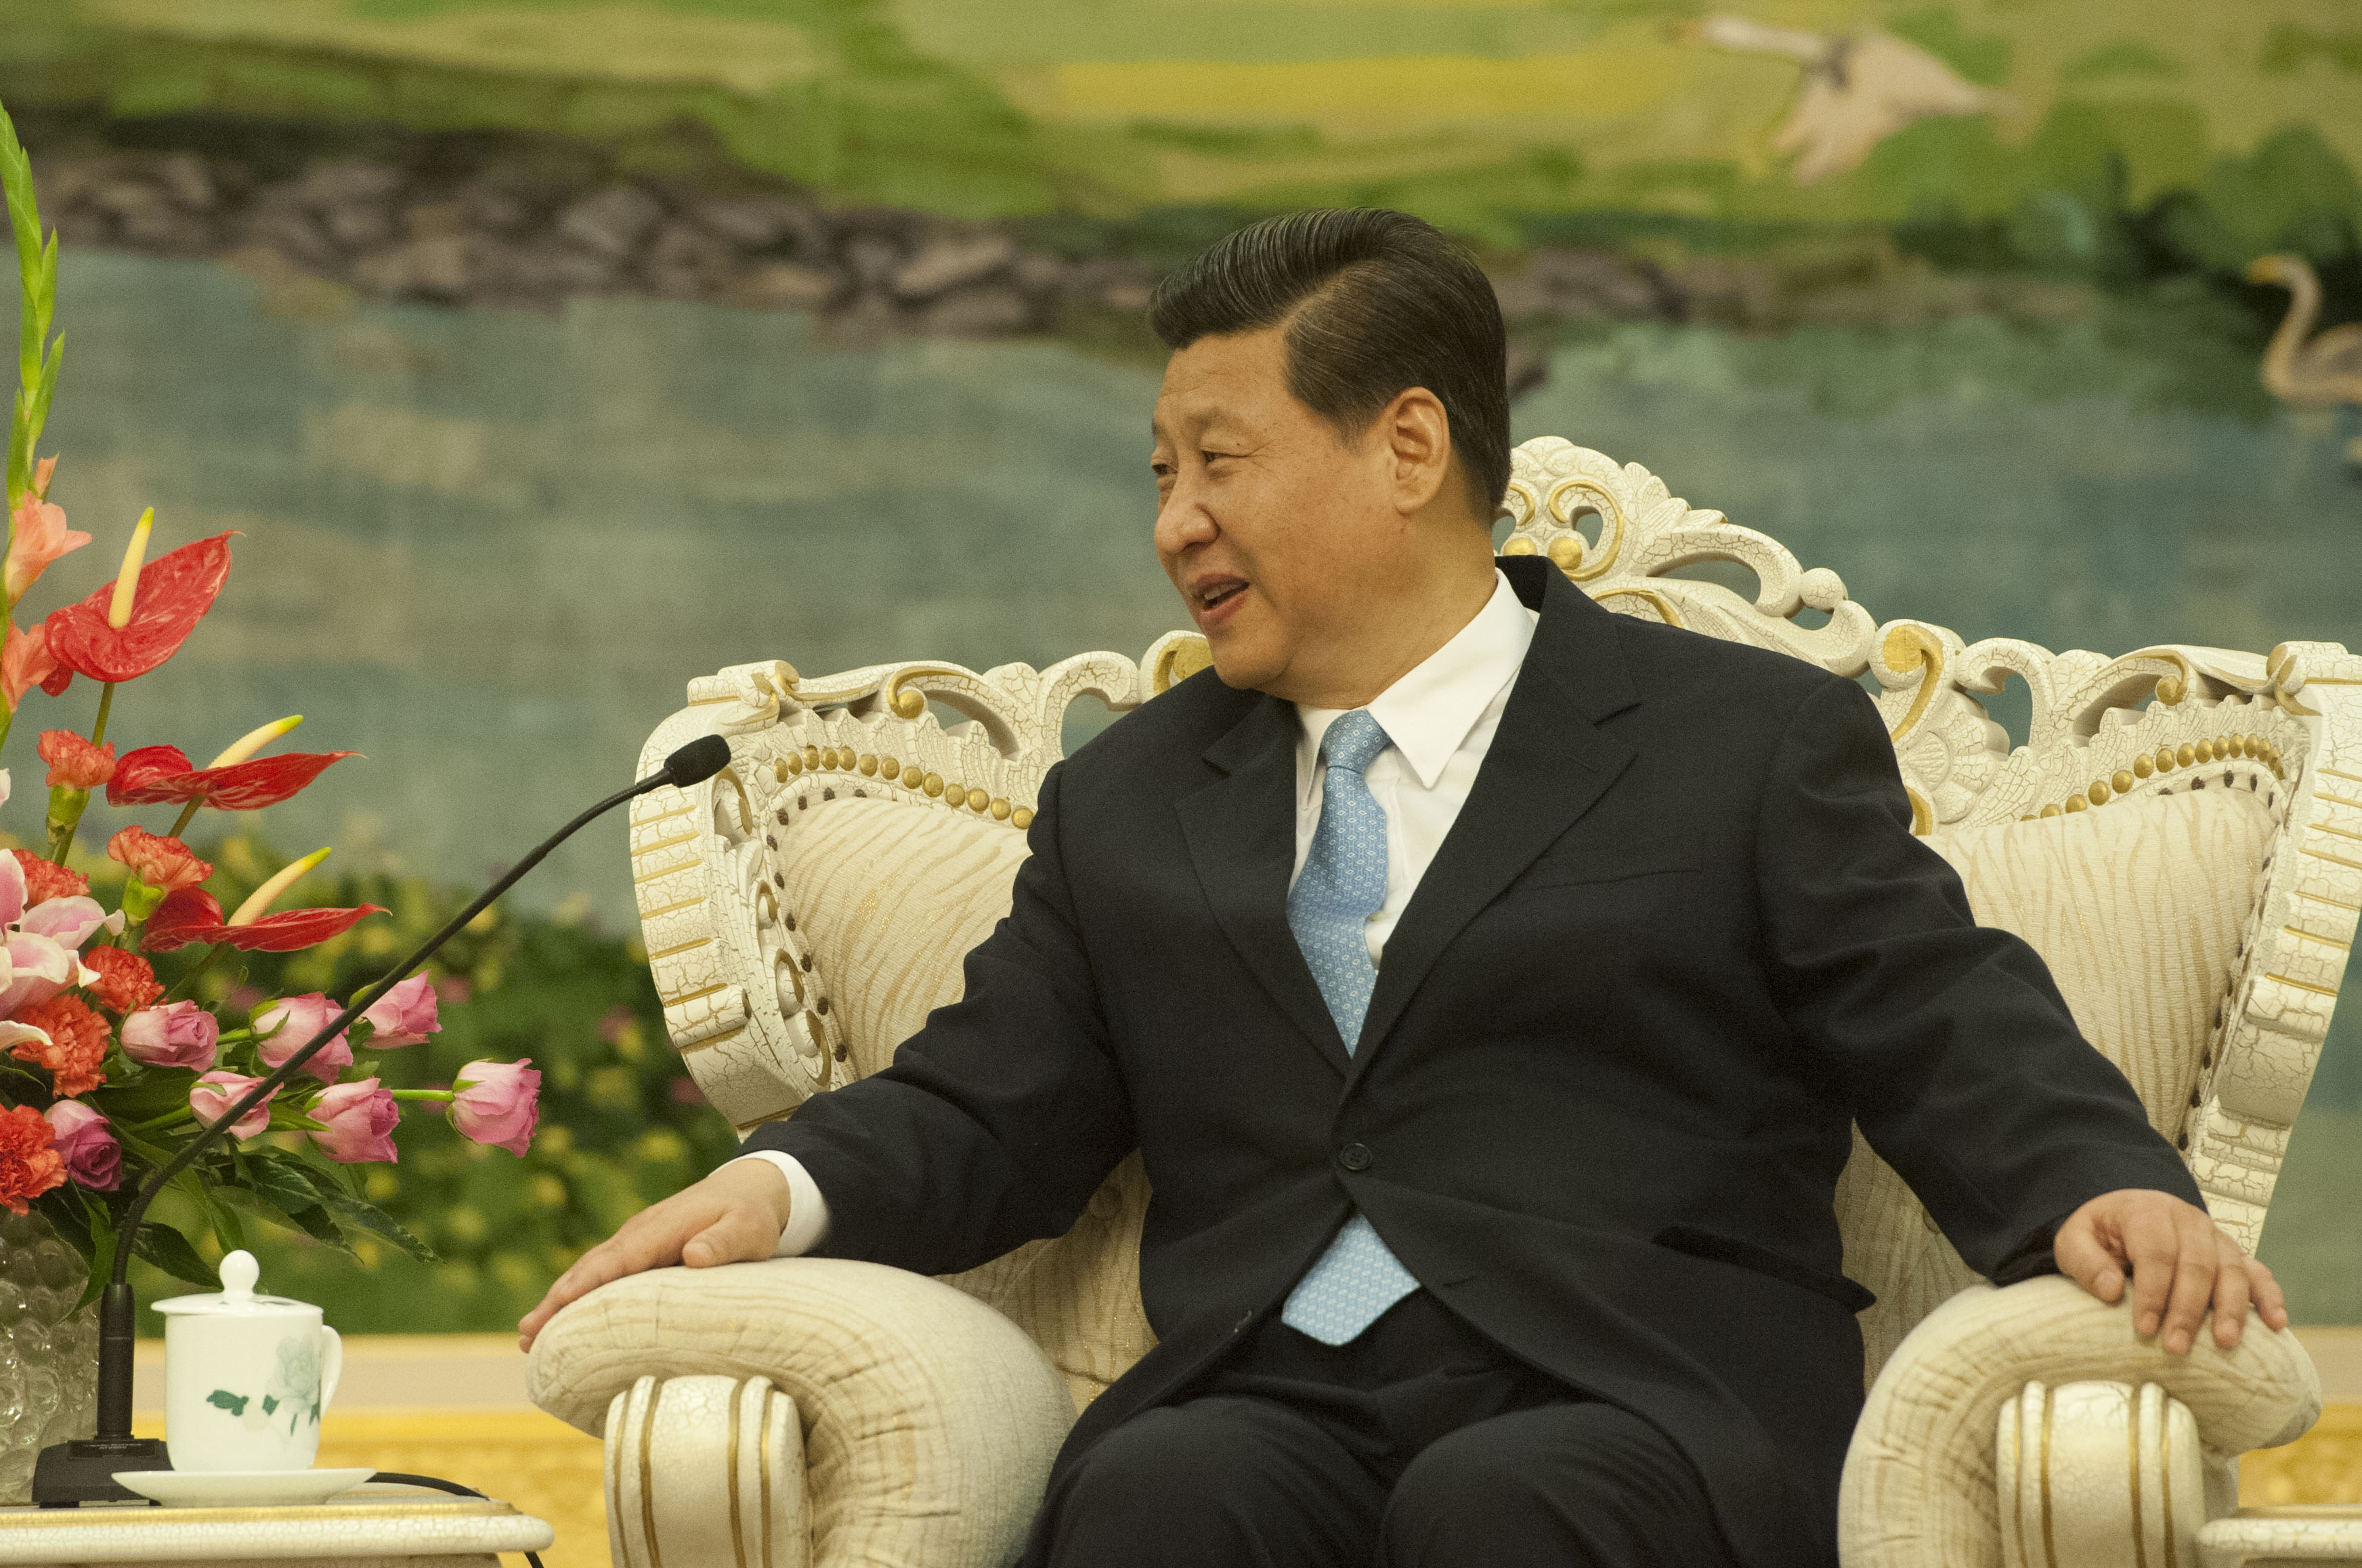 Communist Party leader Xi Jinping. Photo by Erin A. Kirk-Cuomo / Flickr.